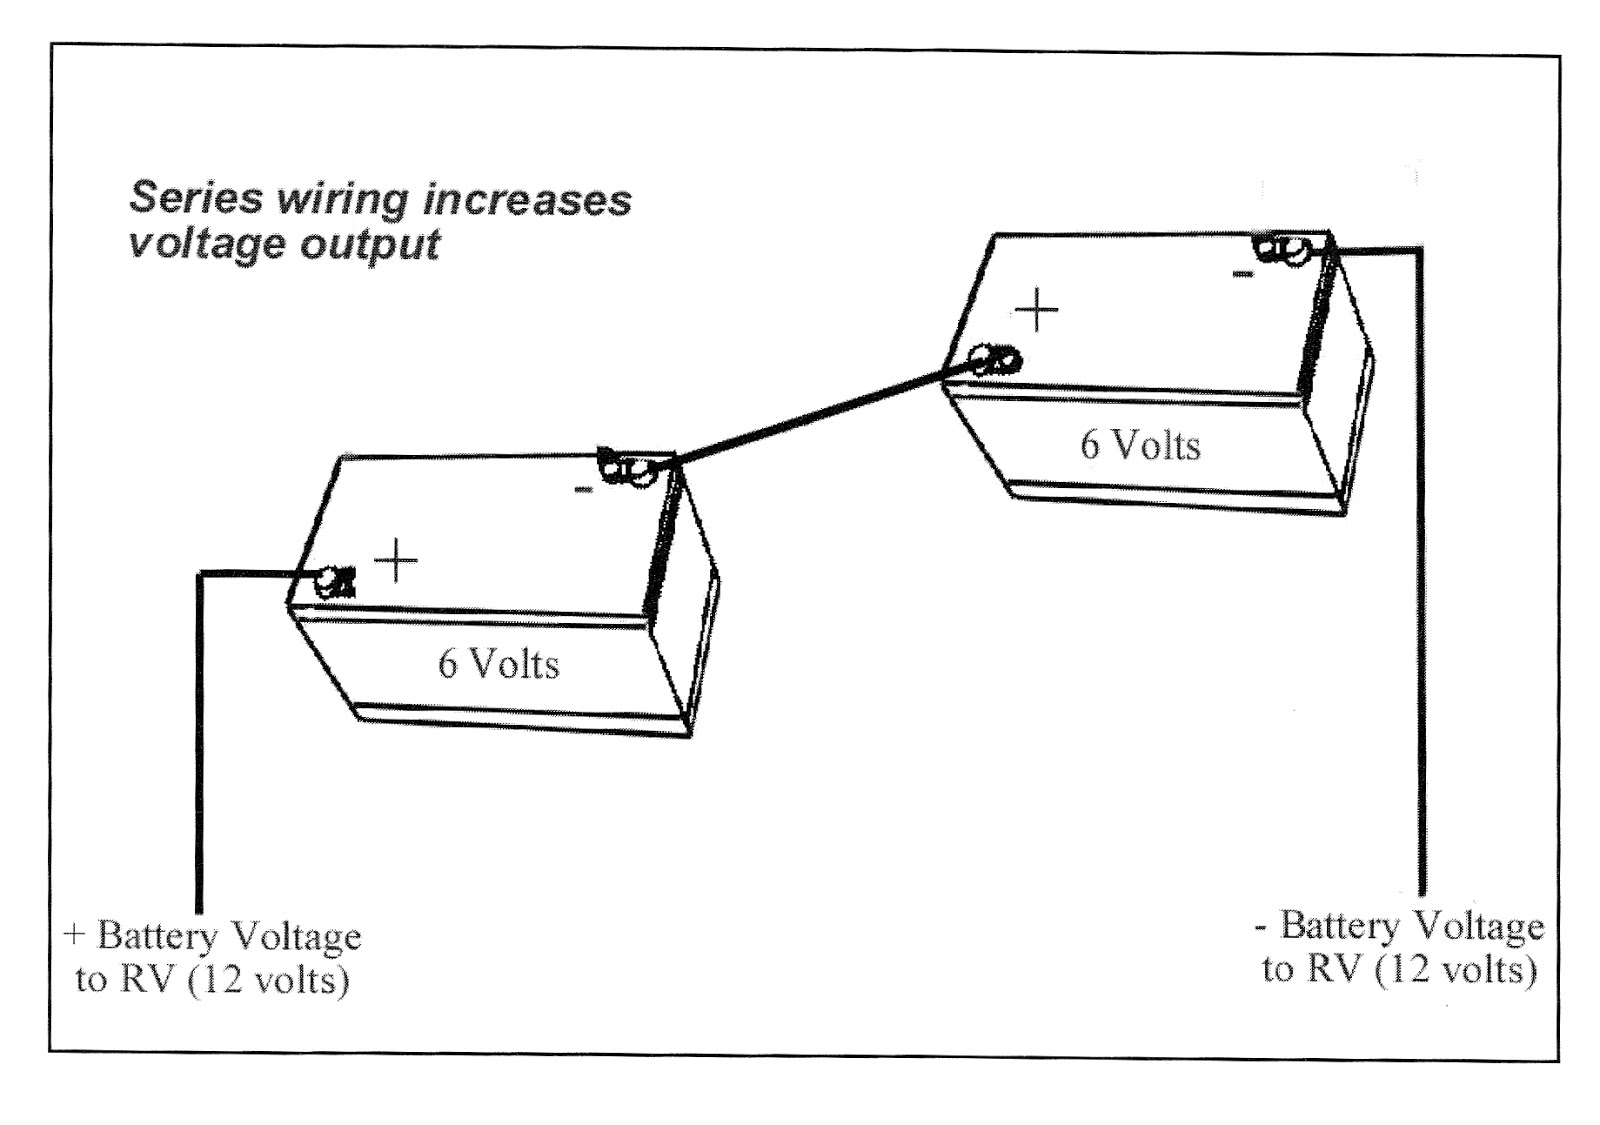 battery+series+wiring+diagram penny's tuppence (2 cents in brit) rv transmission 12v to 6v 6 Volt Positive Ground Wiring at n-0.co